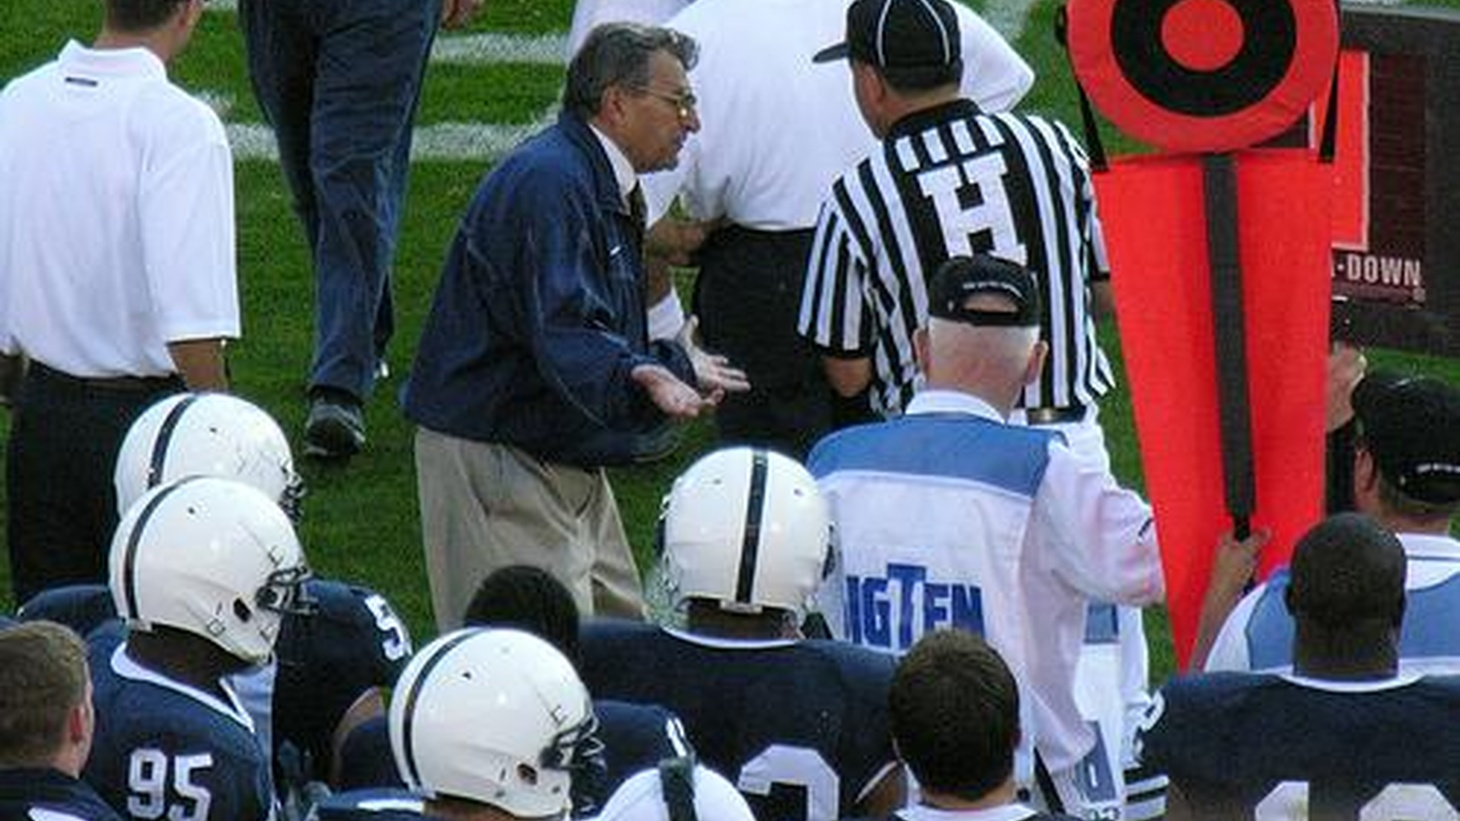 We revisit the show we did two years ago at Penn State, with new interviews, as fans try to make sense of the actions of Coach Joe Paterno and school officials.